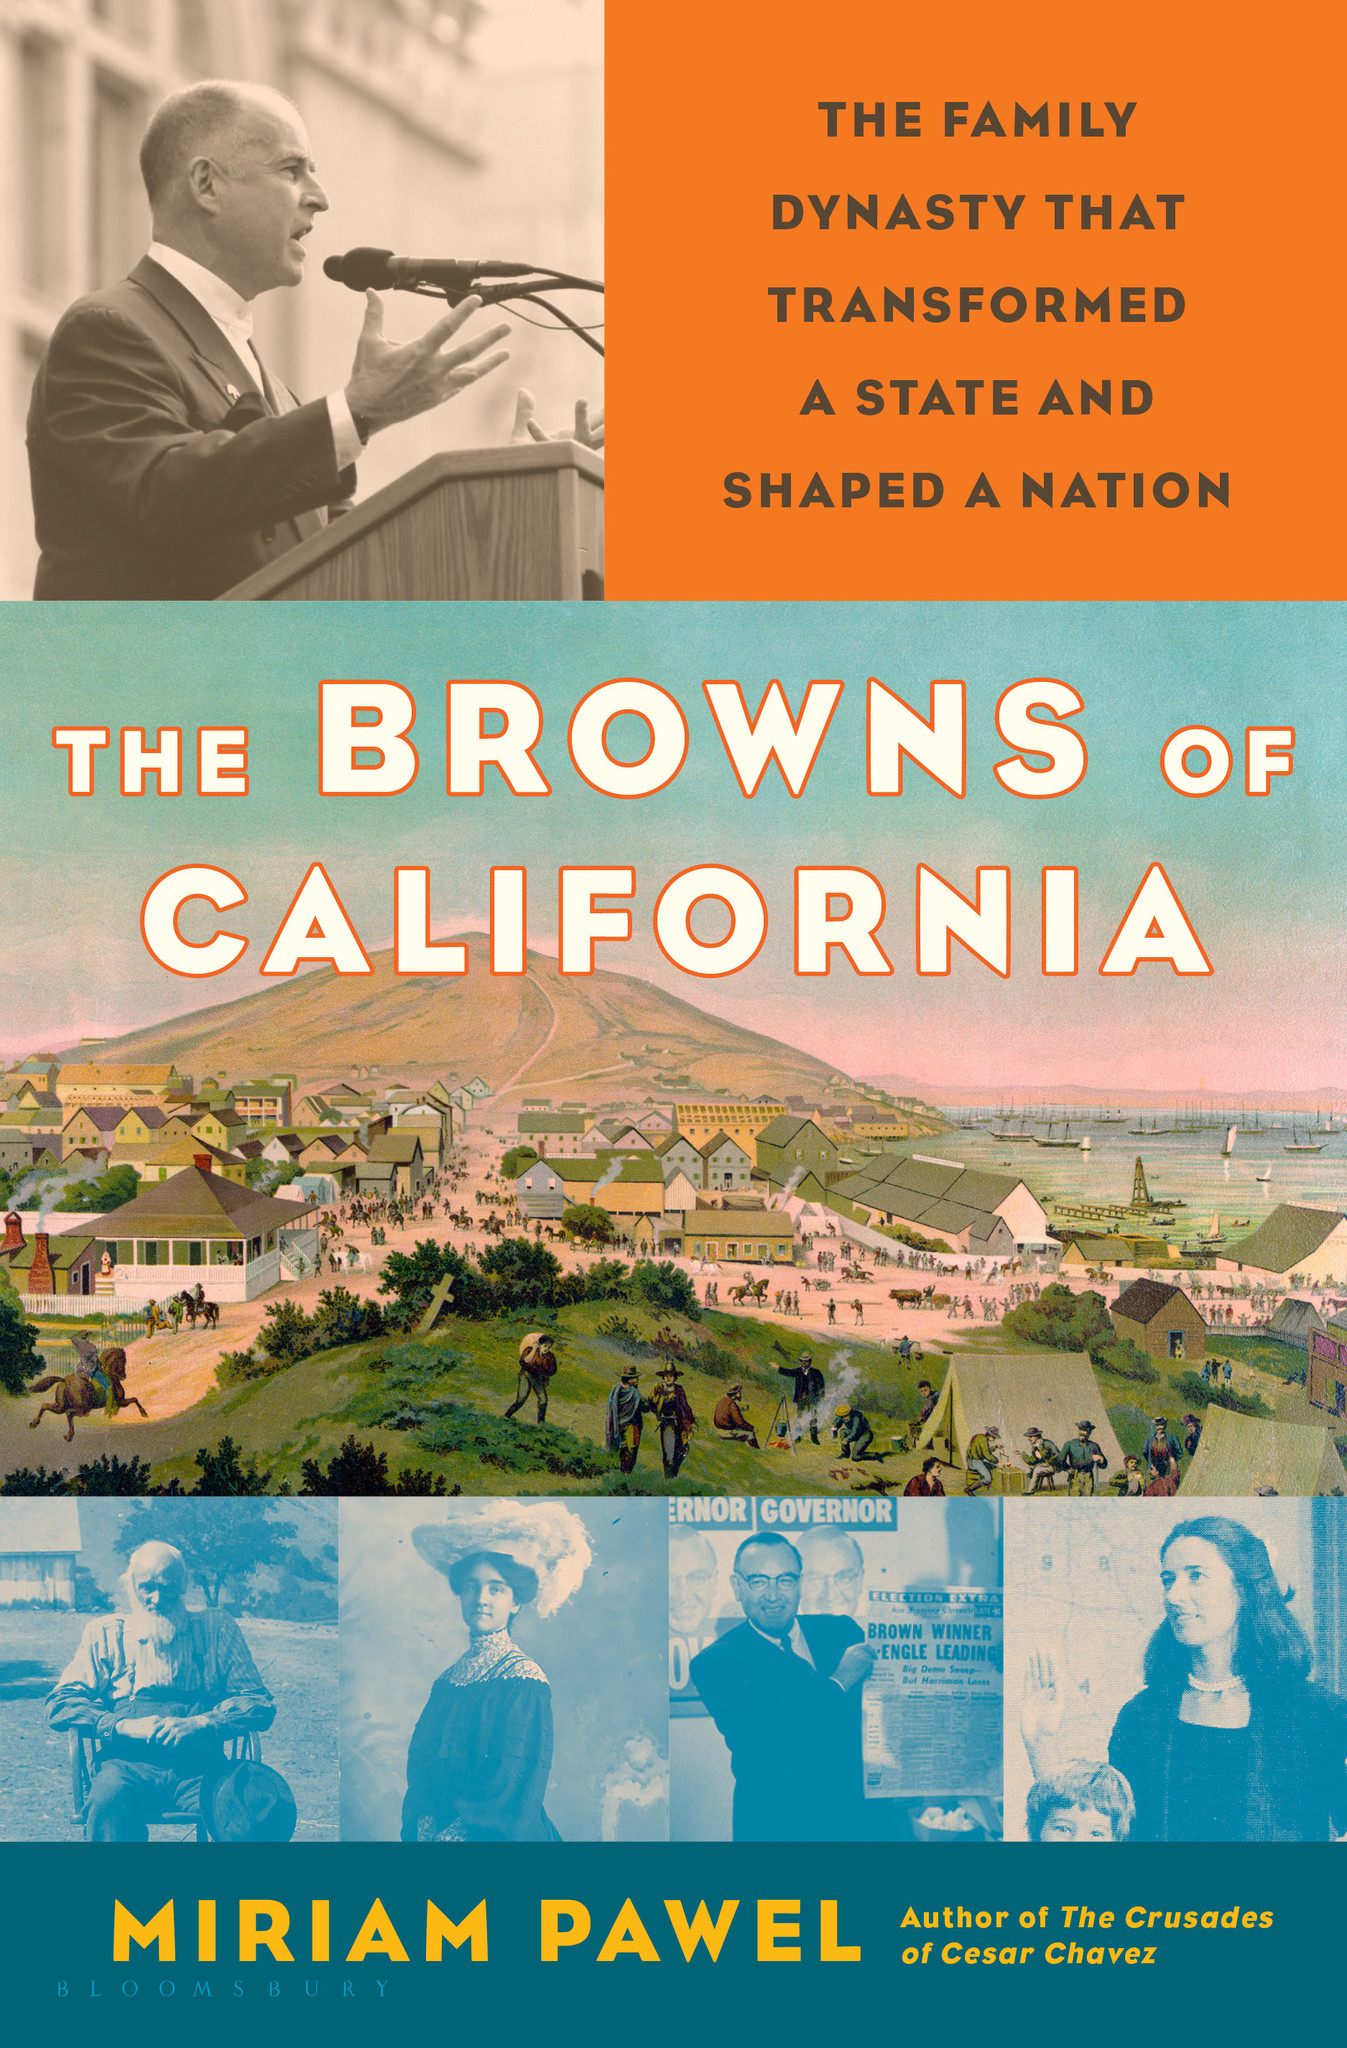 'The Browns of California' by Miriam Pawell